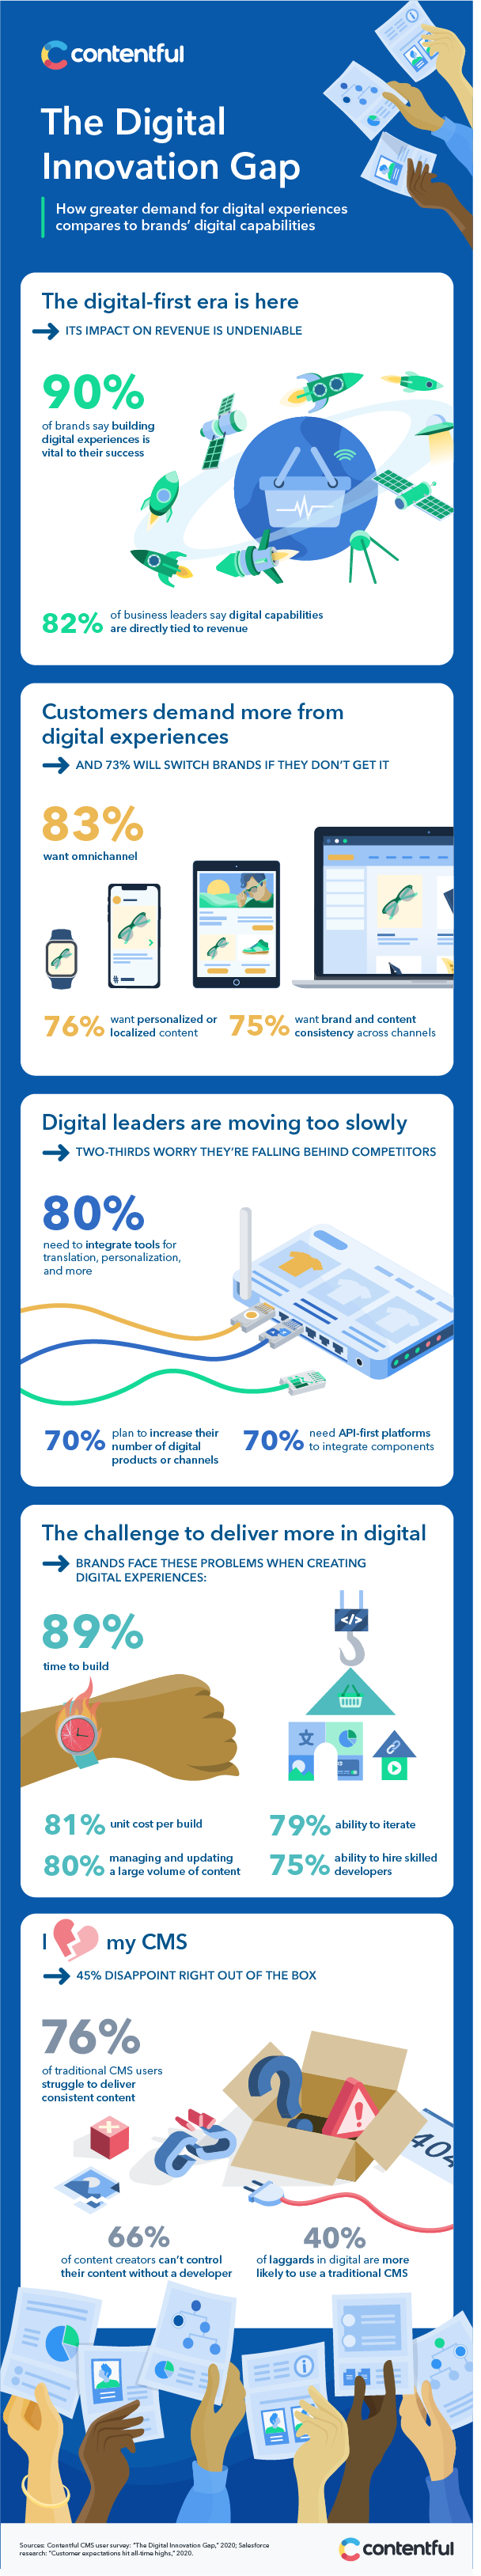 The Digital Innovation Gap infographic